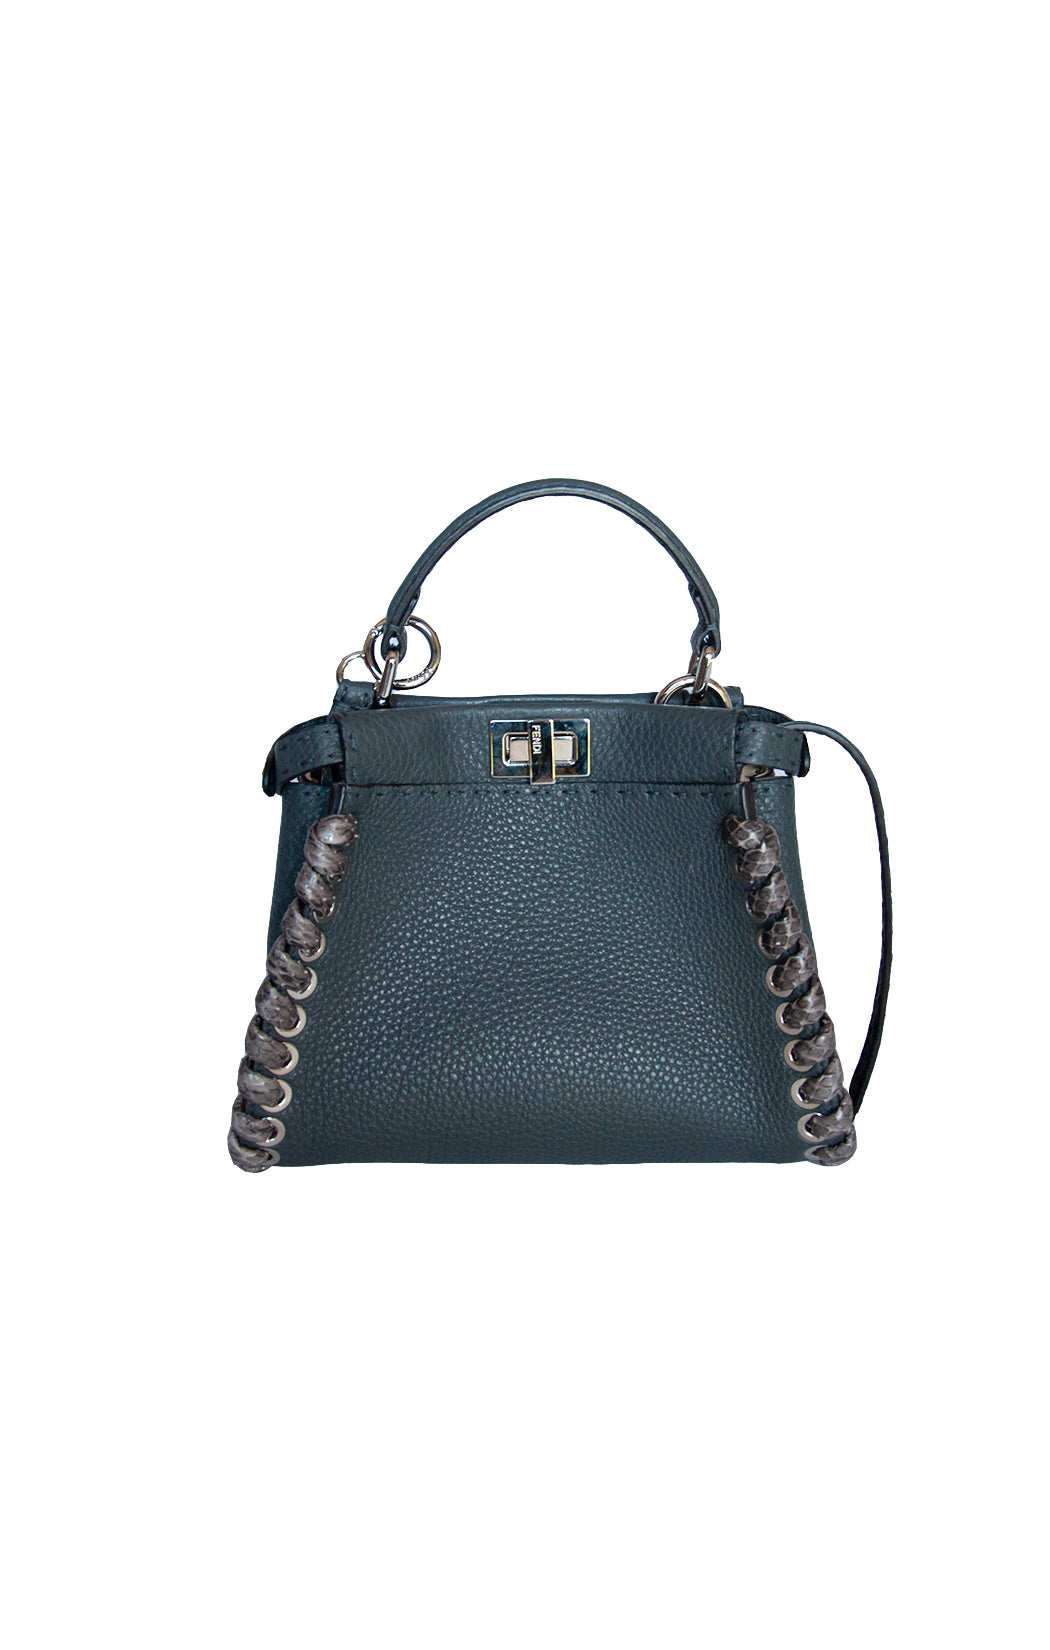 View of FENDI Handbag Size: 9.5 in. x 7 in. x 5 in.